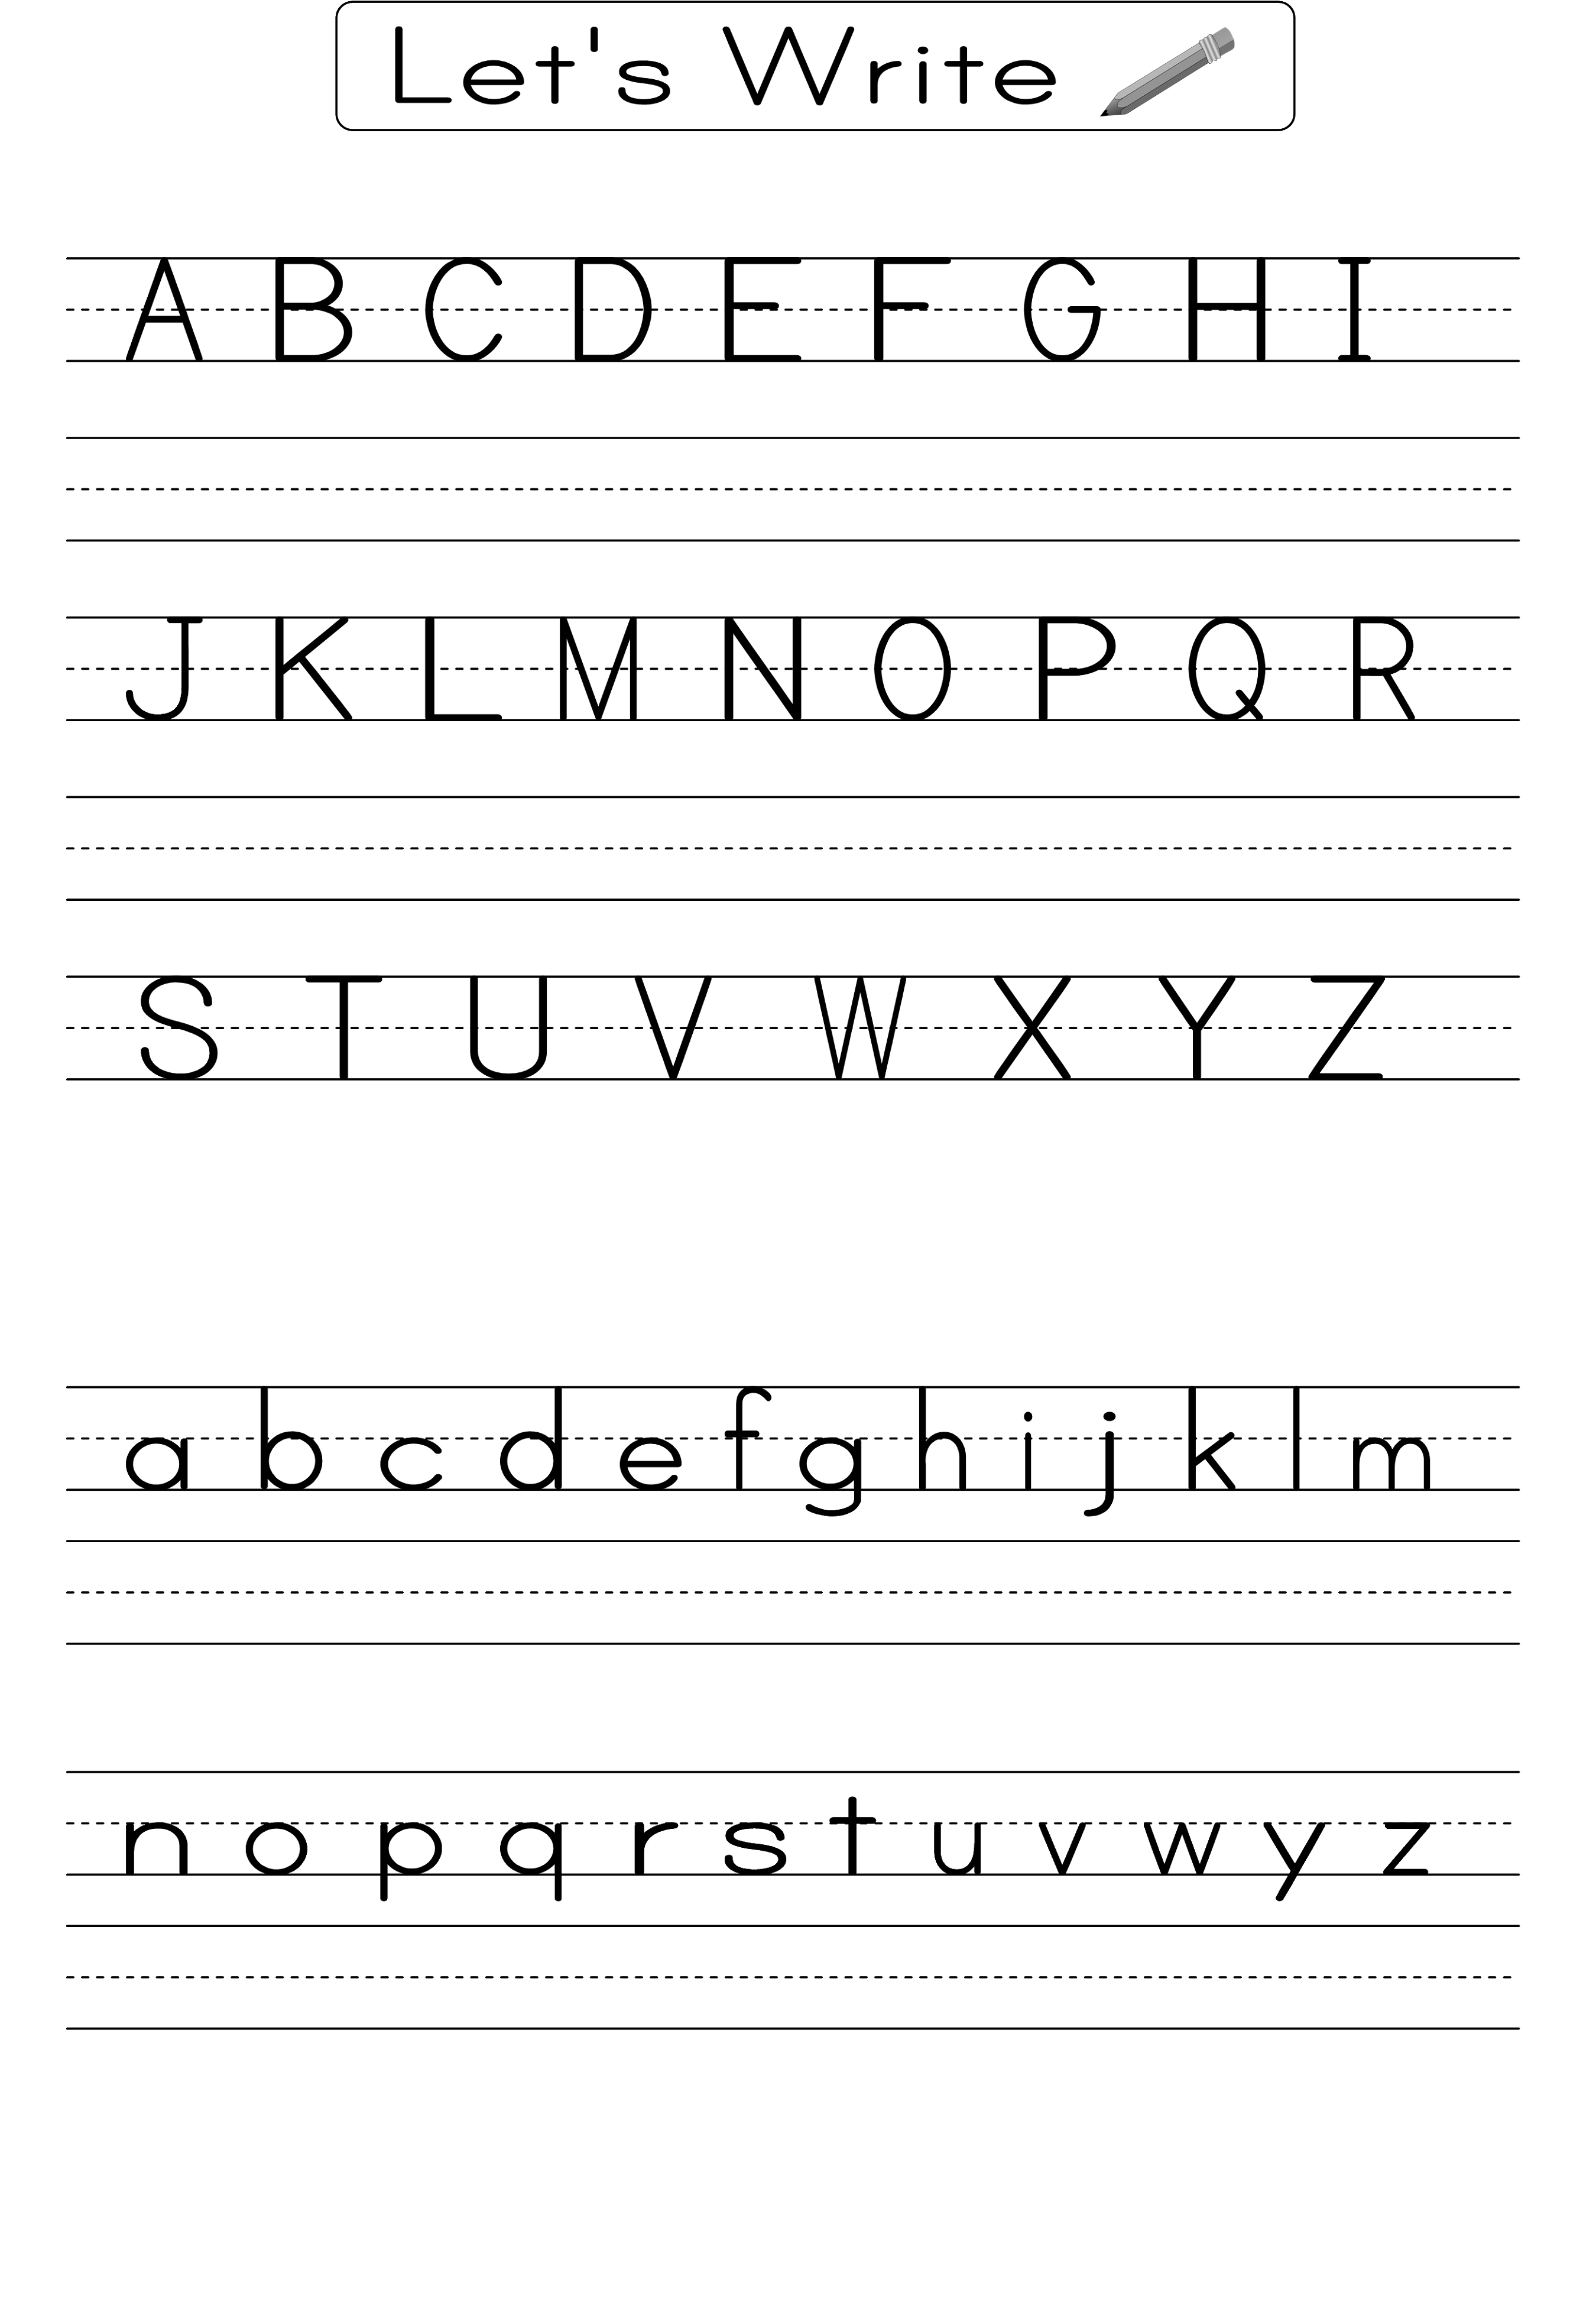 Writing Alphabet Worksheets For Students